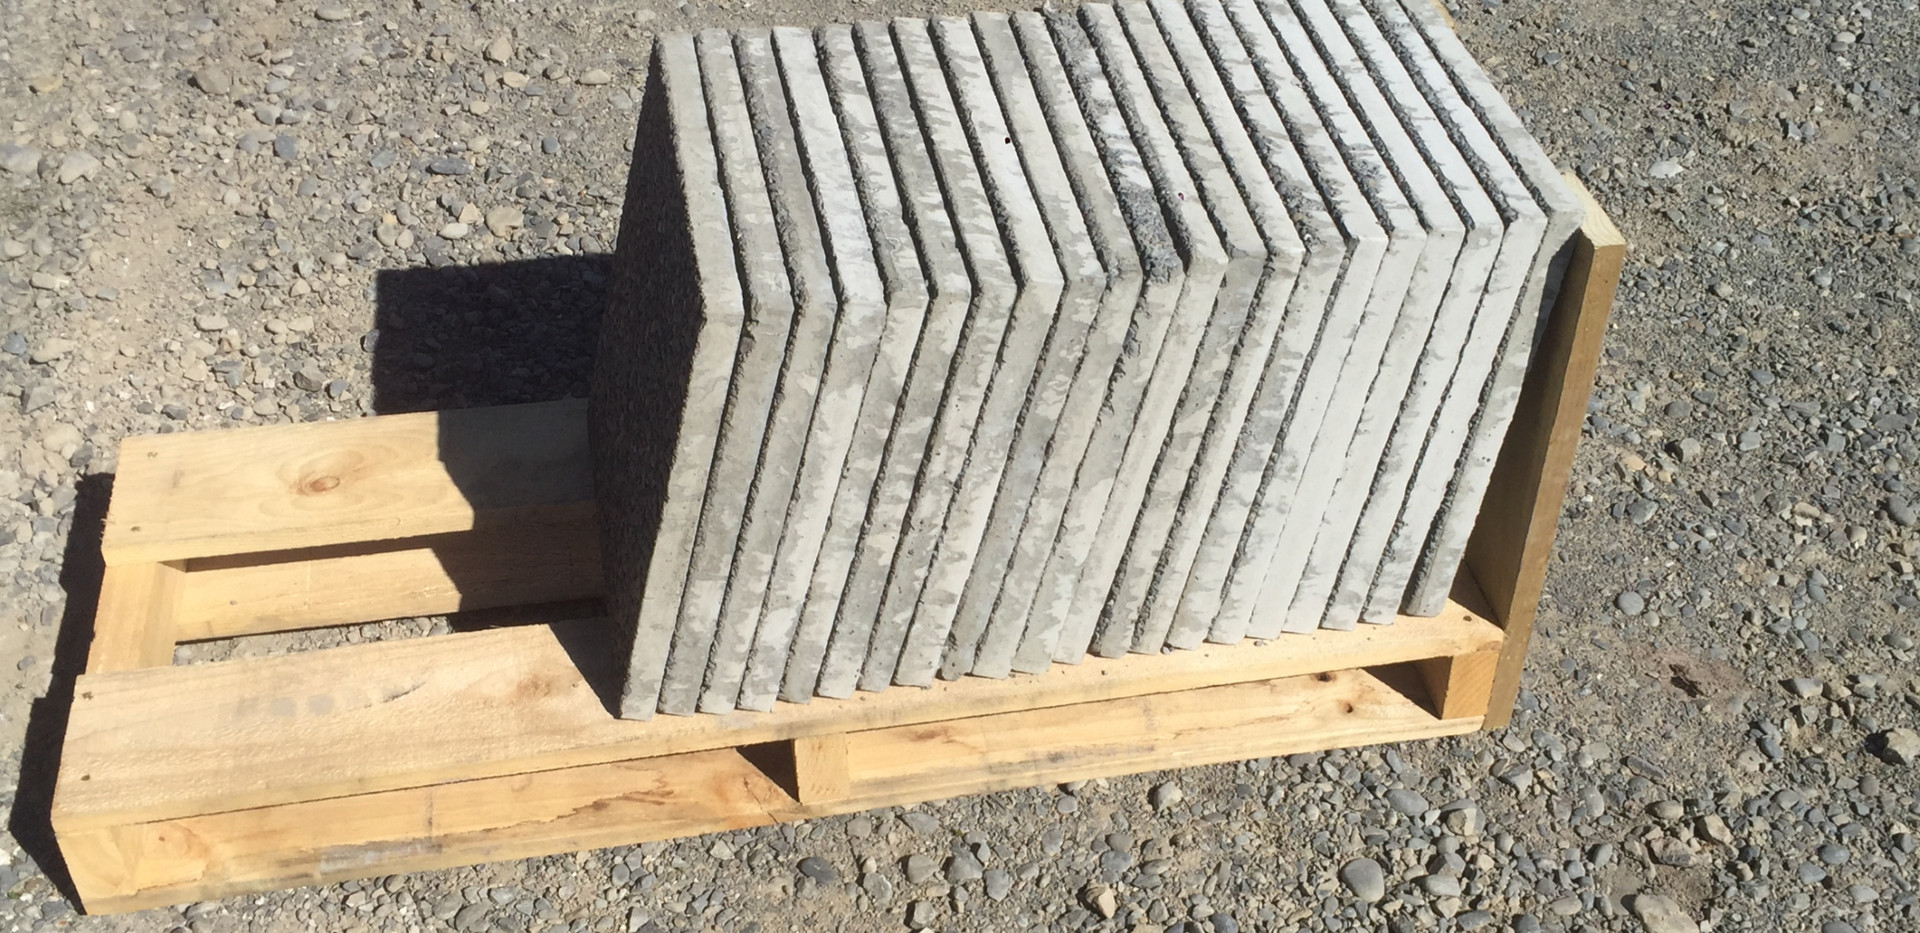 Paver Concrete on Pallet_edited.jpg